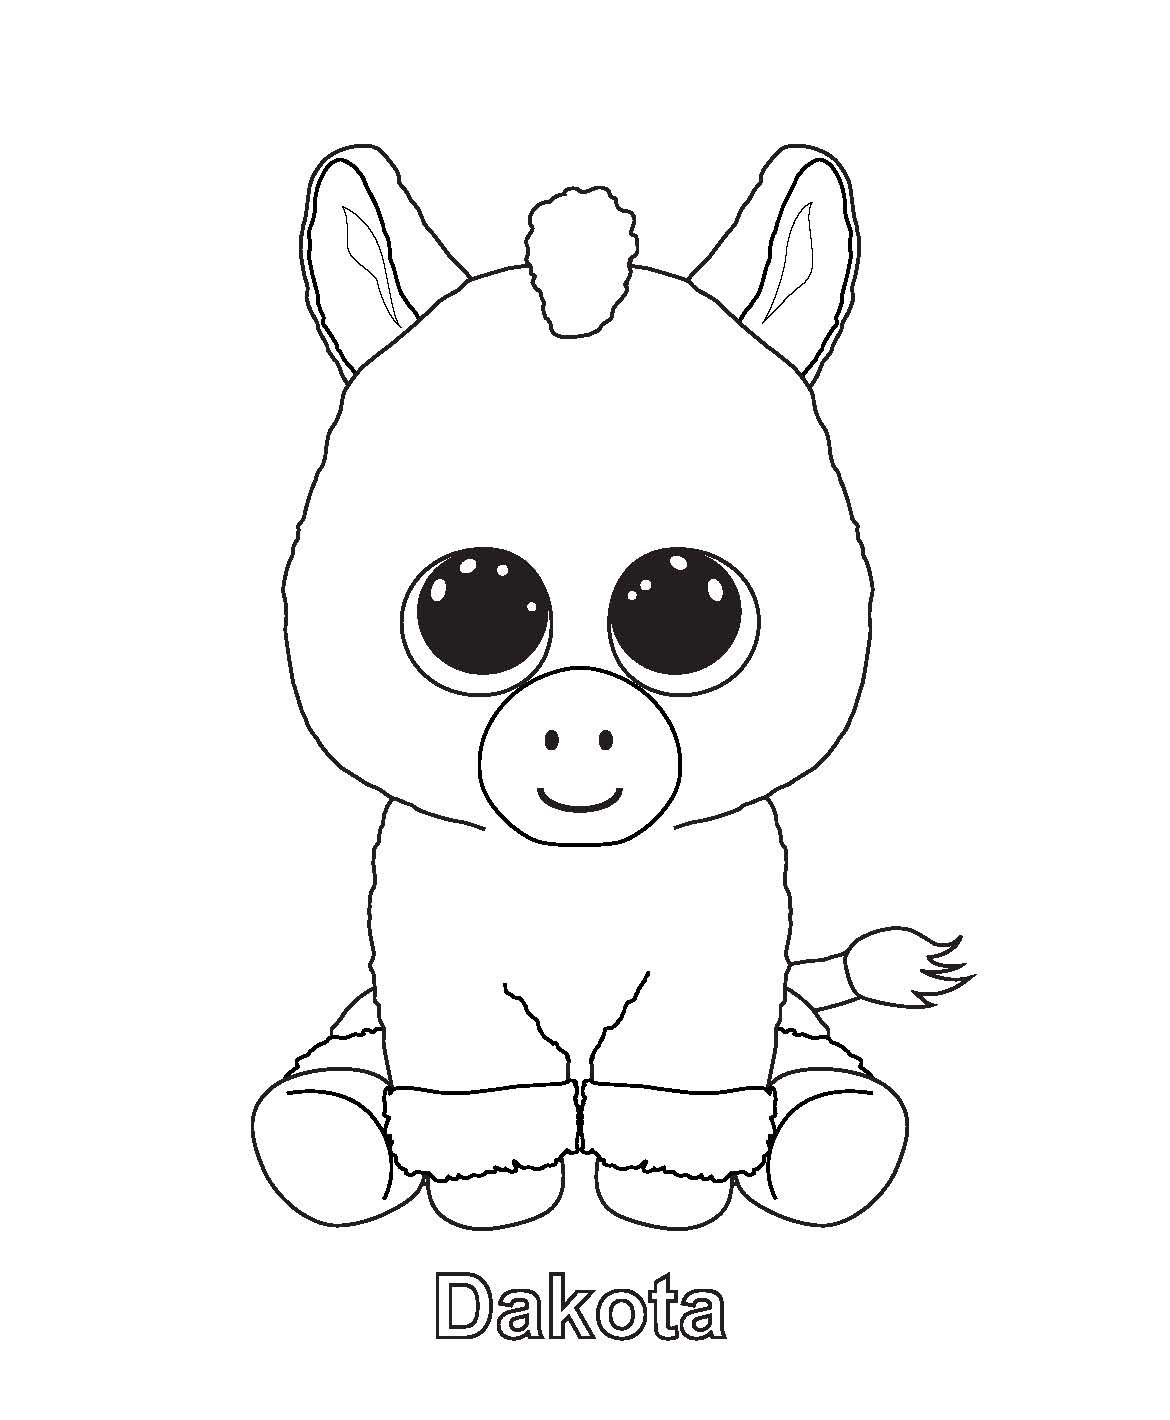 Beanie Boo Colouring Pages Unicorn Coloring Pages Beanie Boo Birthdays Pictures Of Beanie Boos